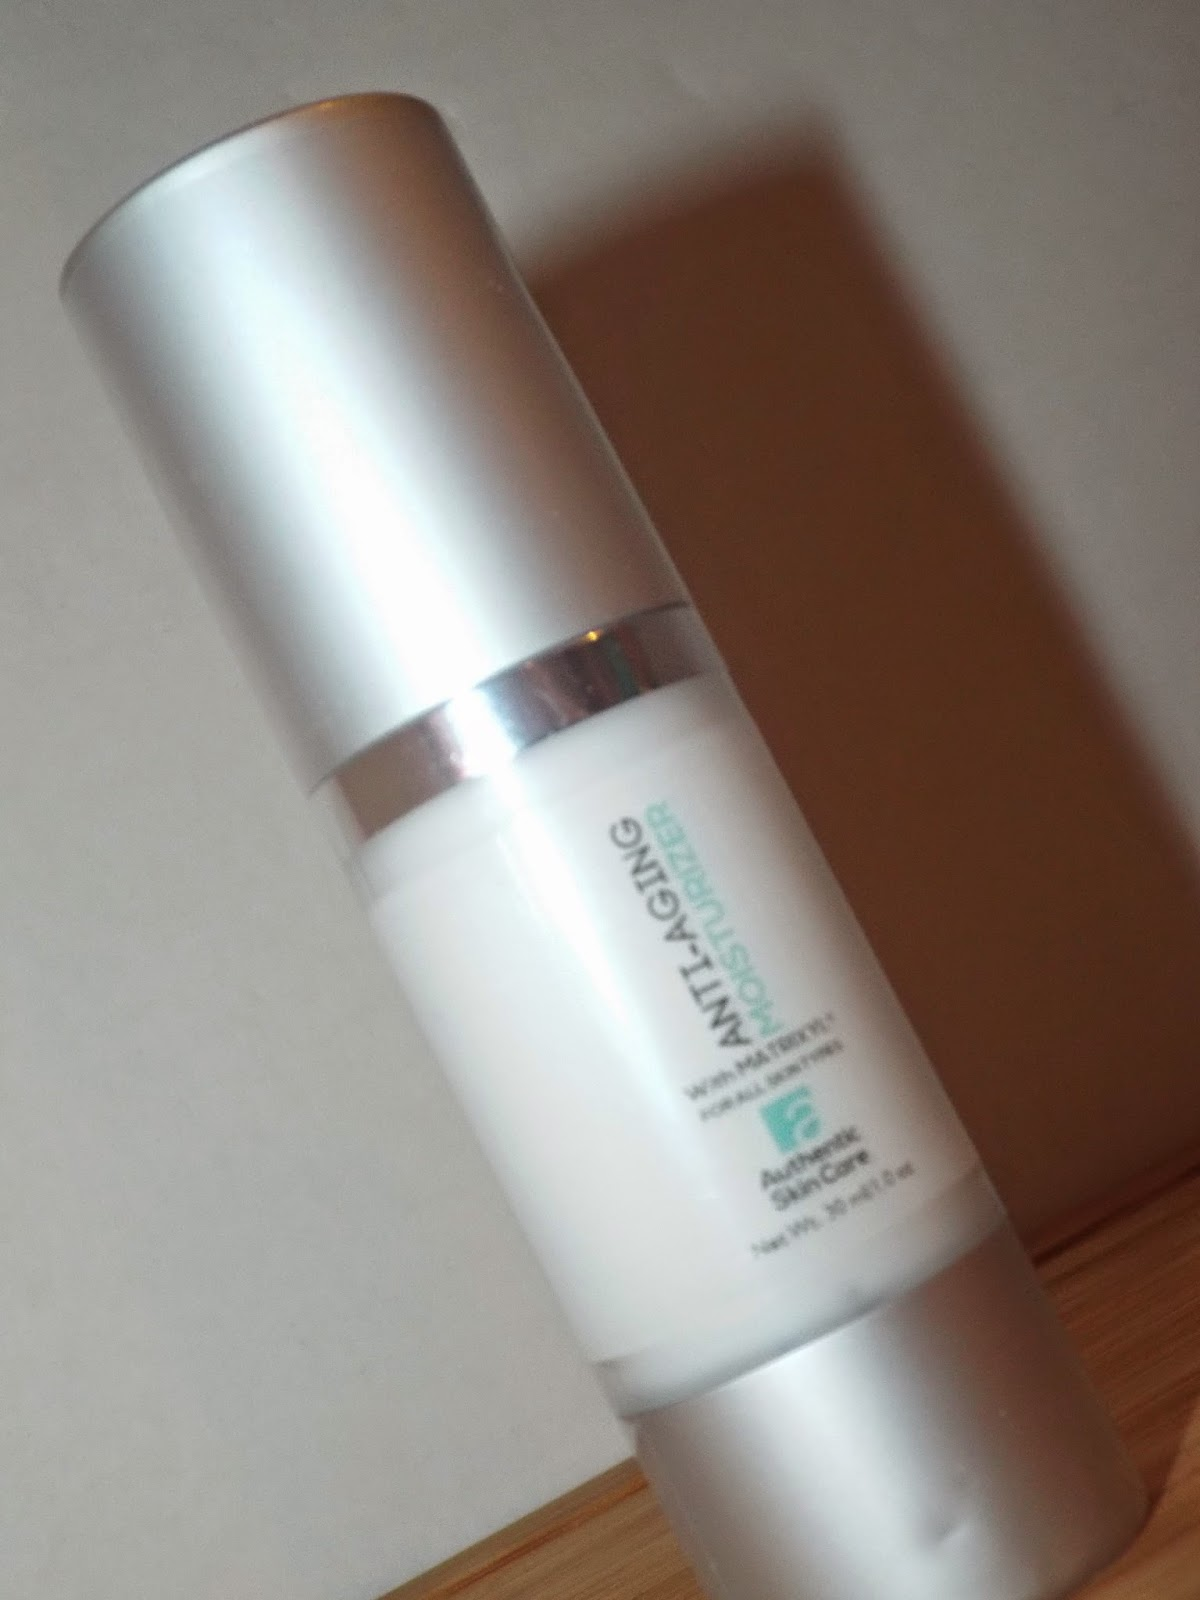 Authentic Skincare: Anti-Aging Moisturizer